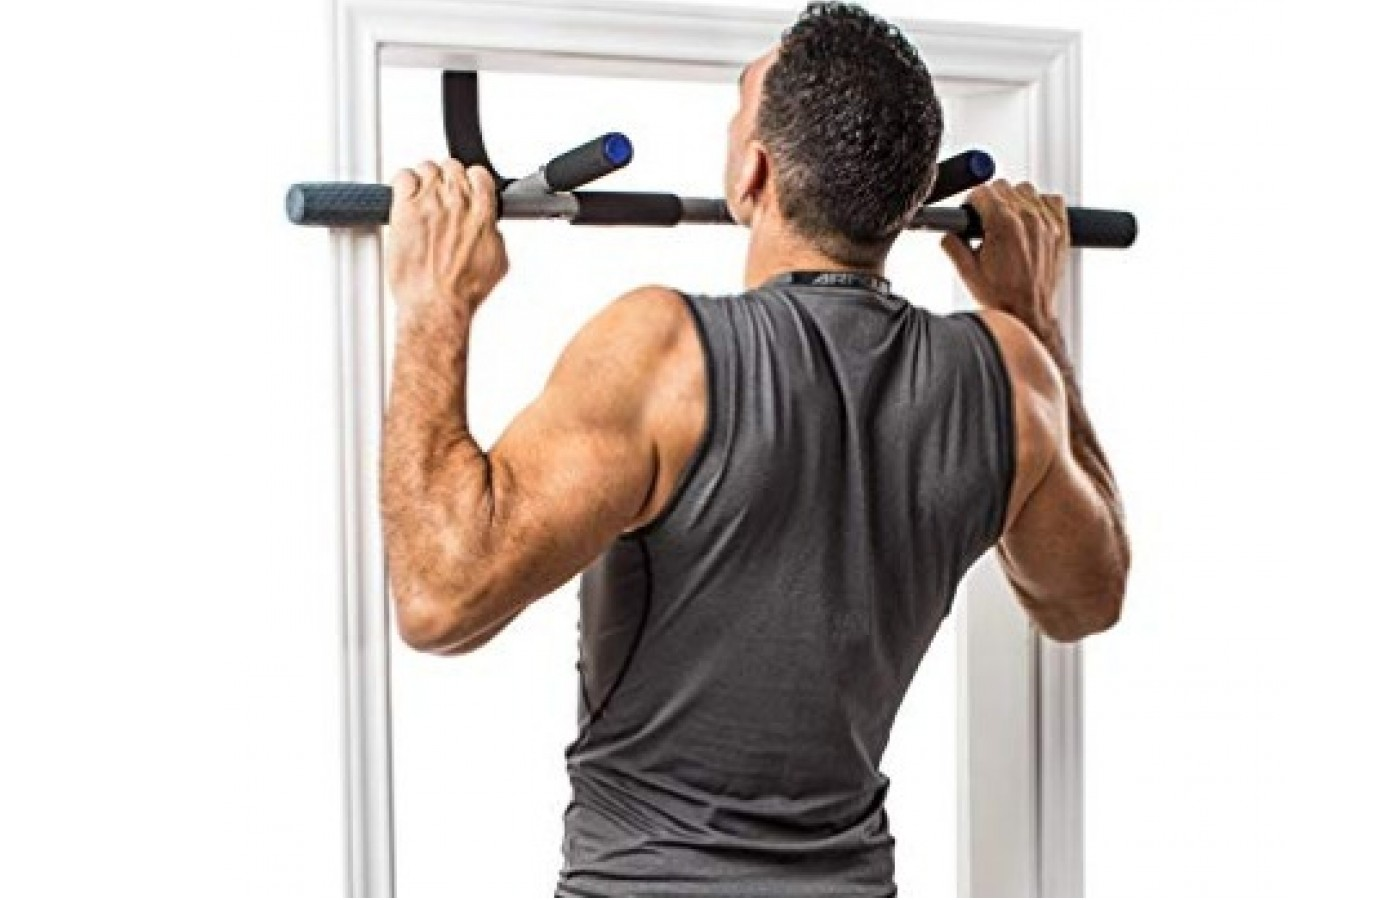 The Perfect Fitness Multi Gym Pro easily fits most doorways.